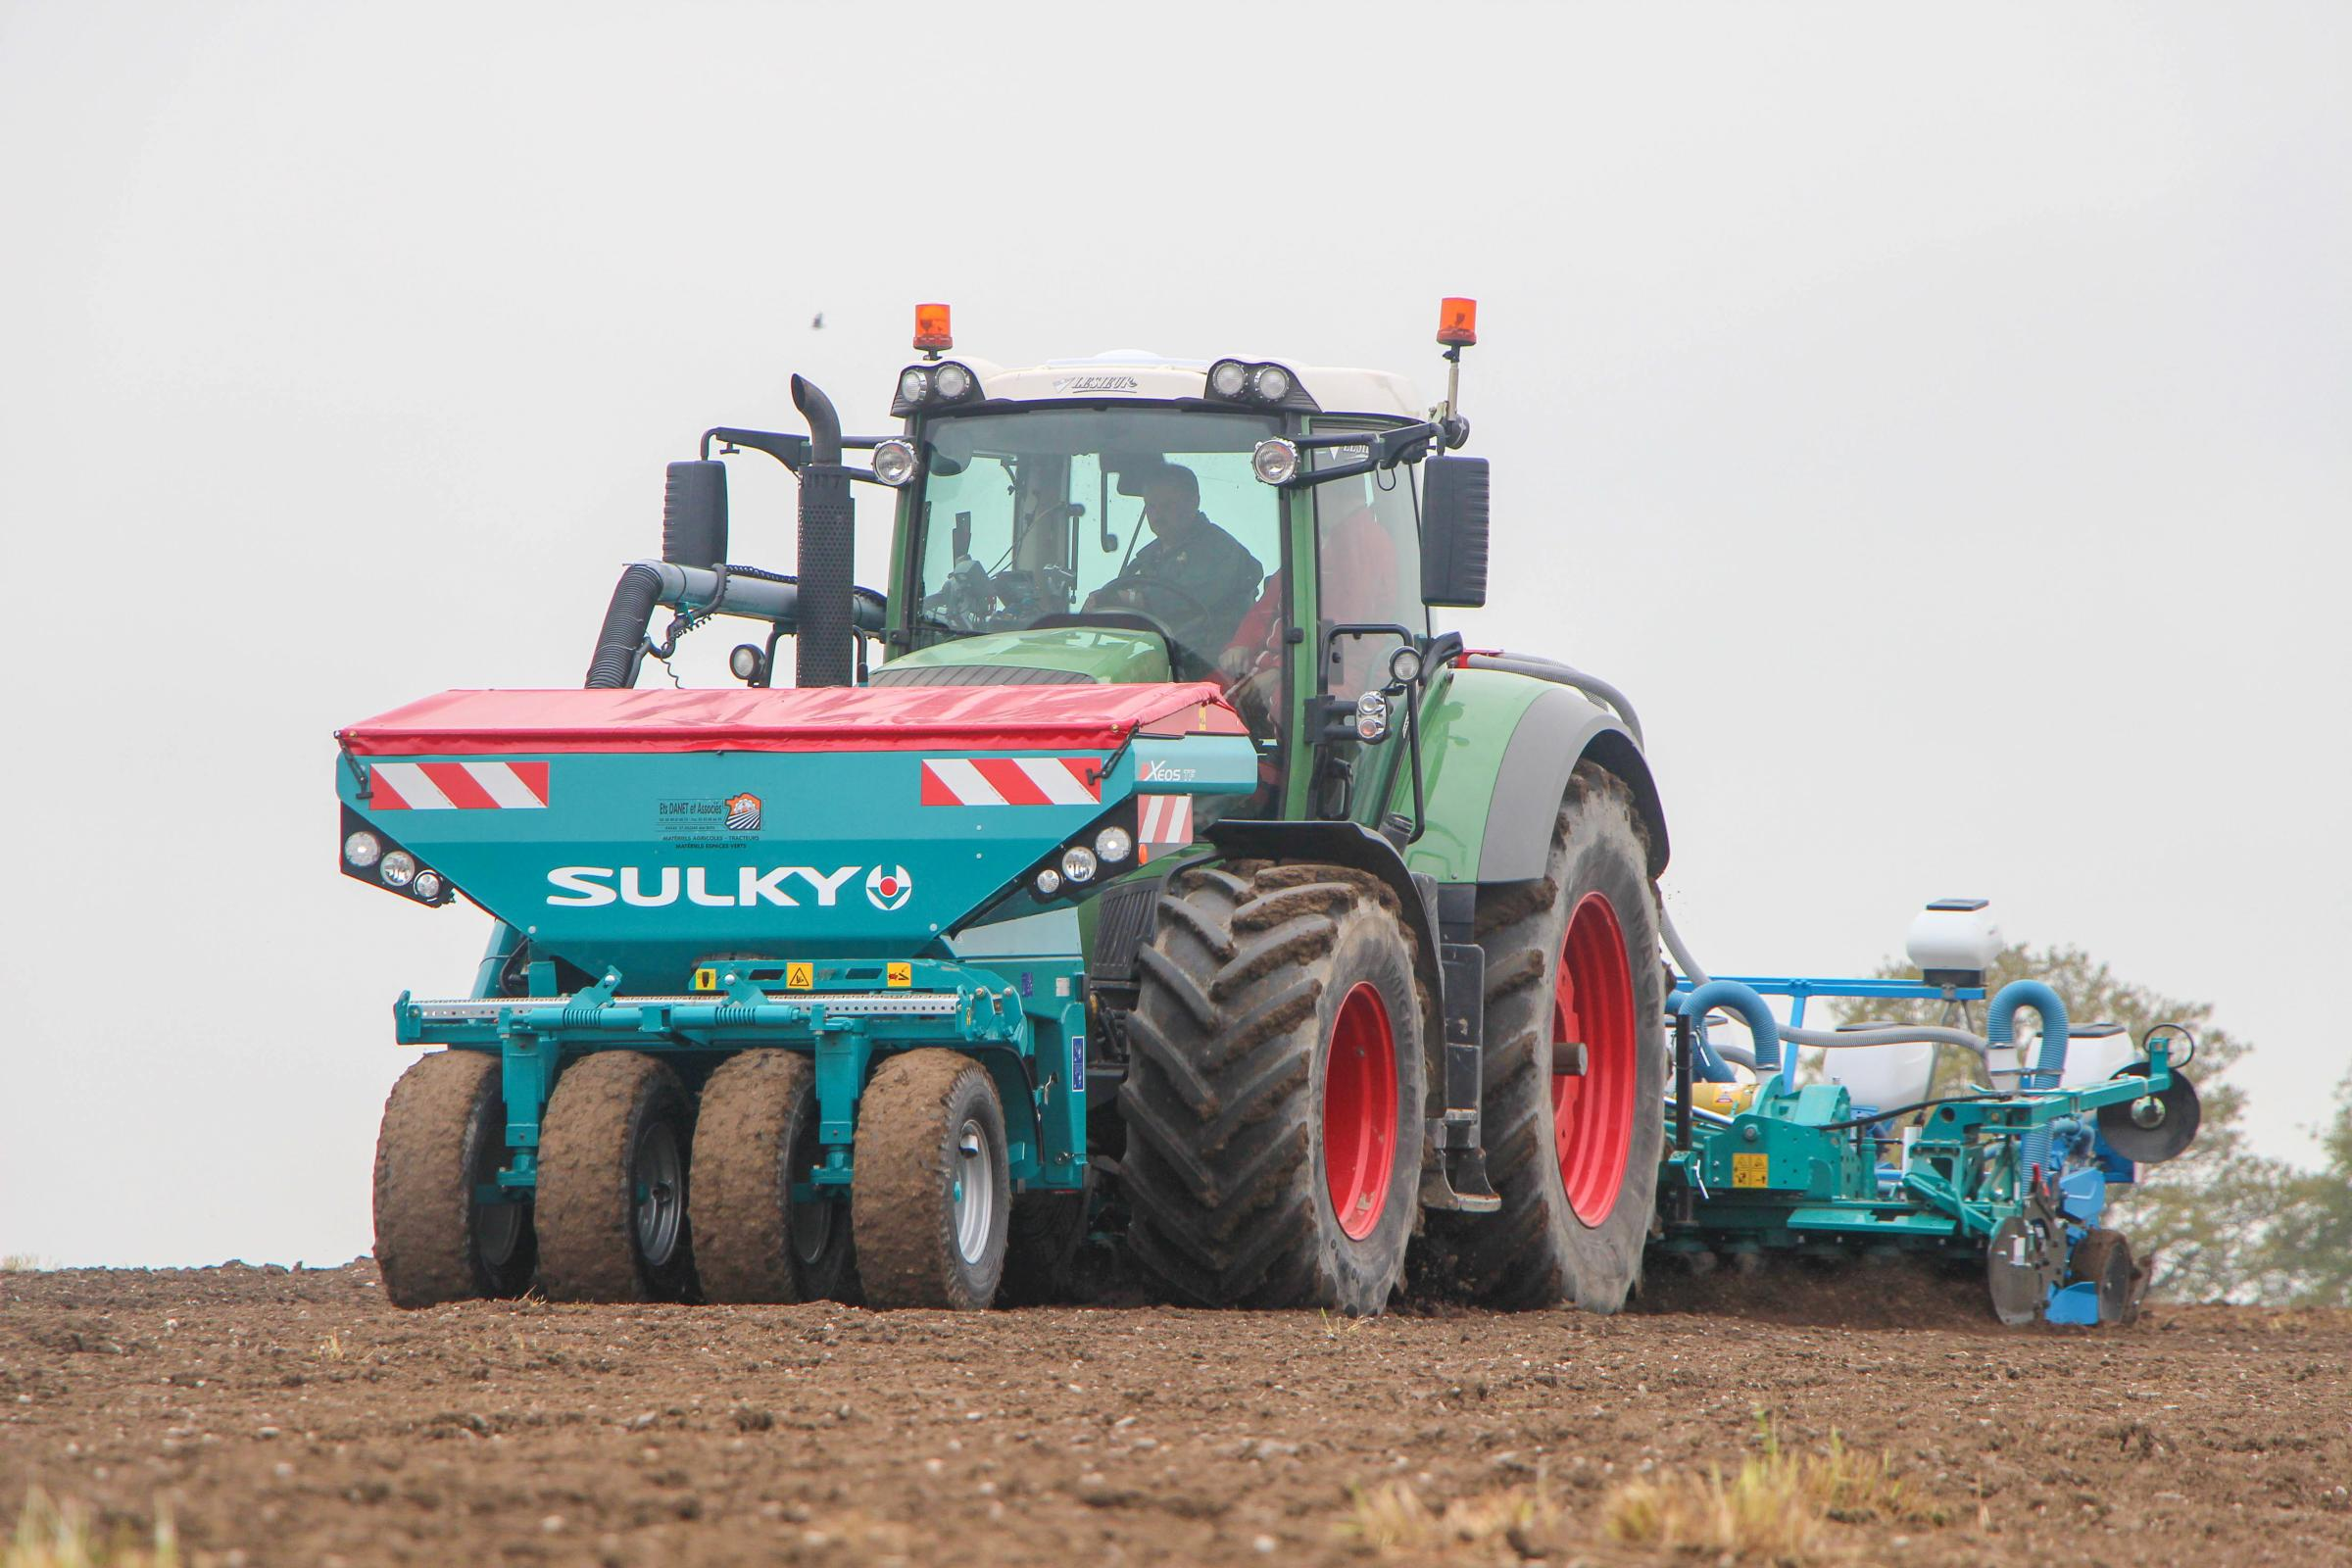 The Sulky Burel new Xeos TF drill will be shown working with the new Cultiline folding harrow at Tillage